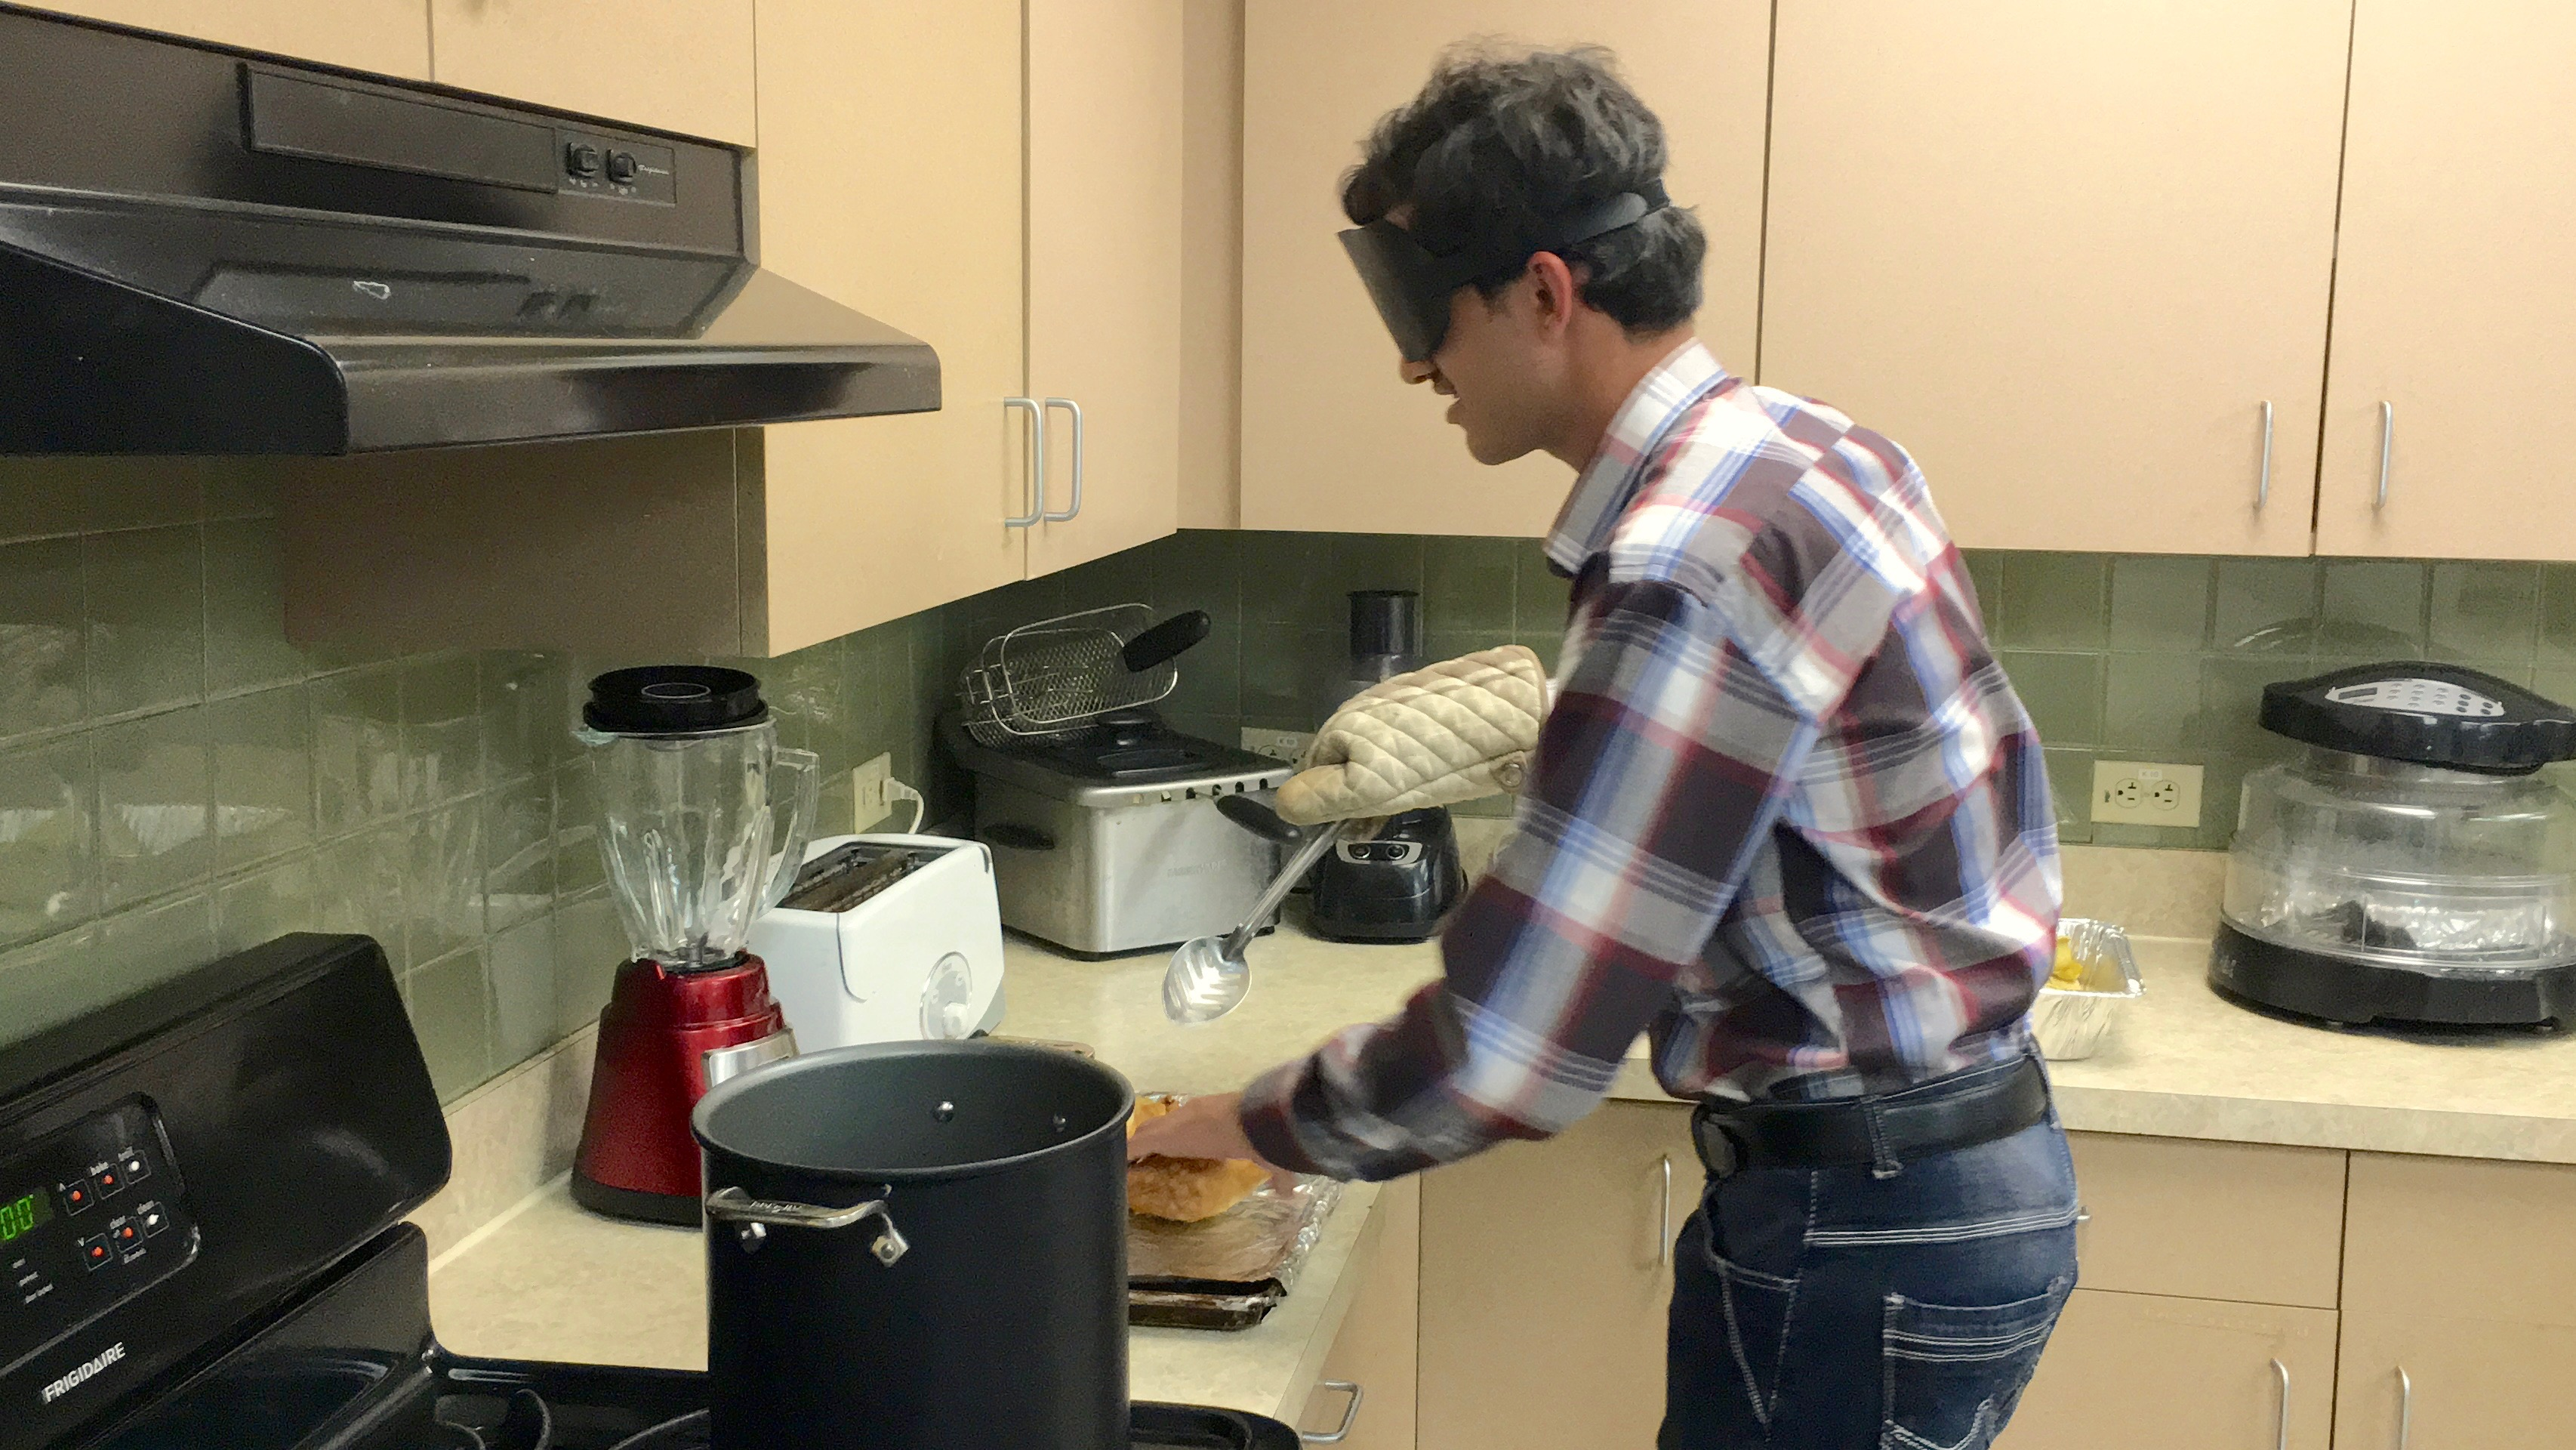 Farhan takes Somosas out of a tall pot of hot oil